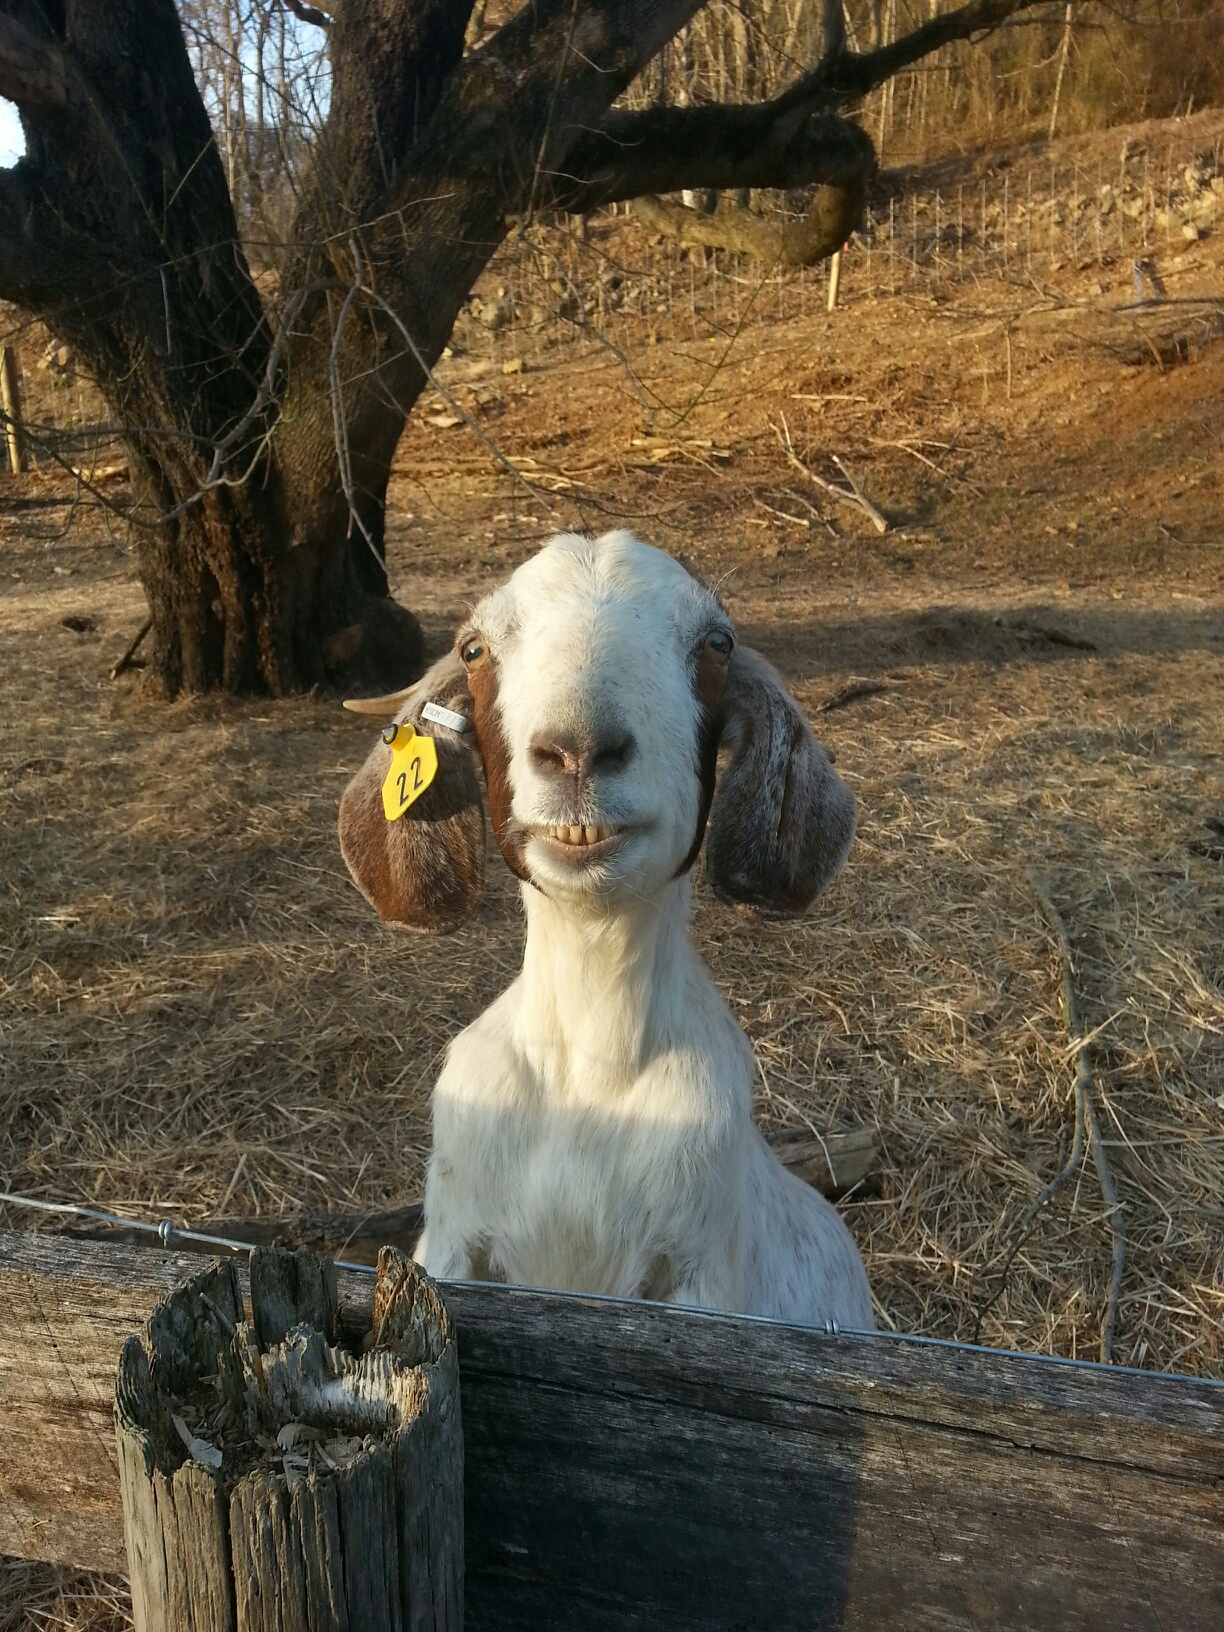 Goat smiling big